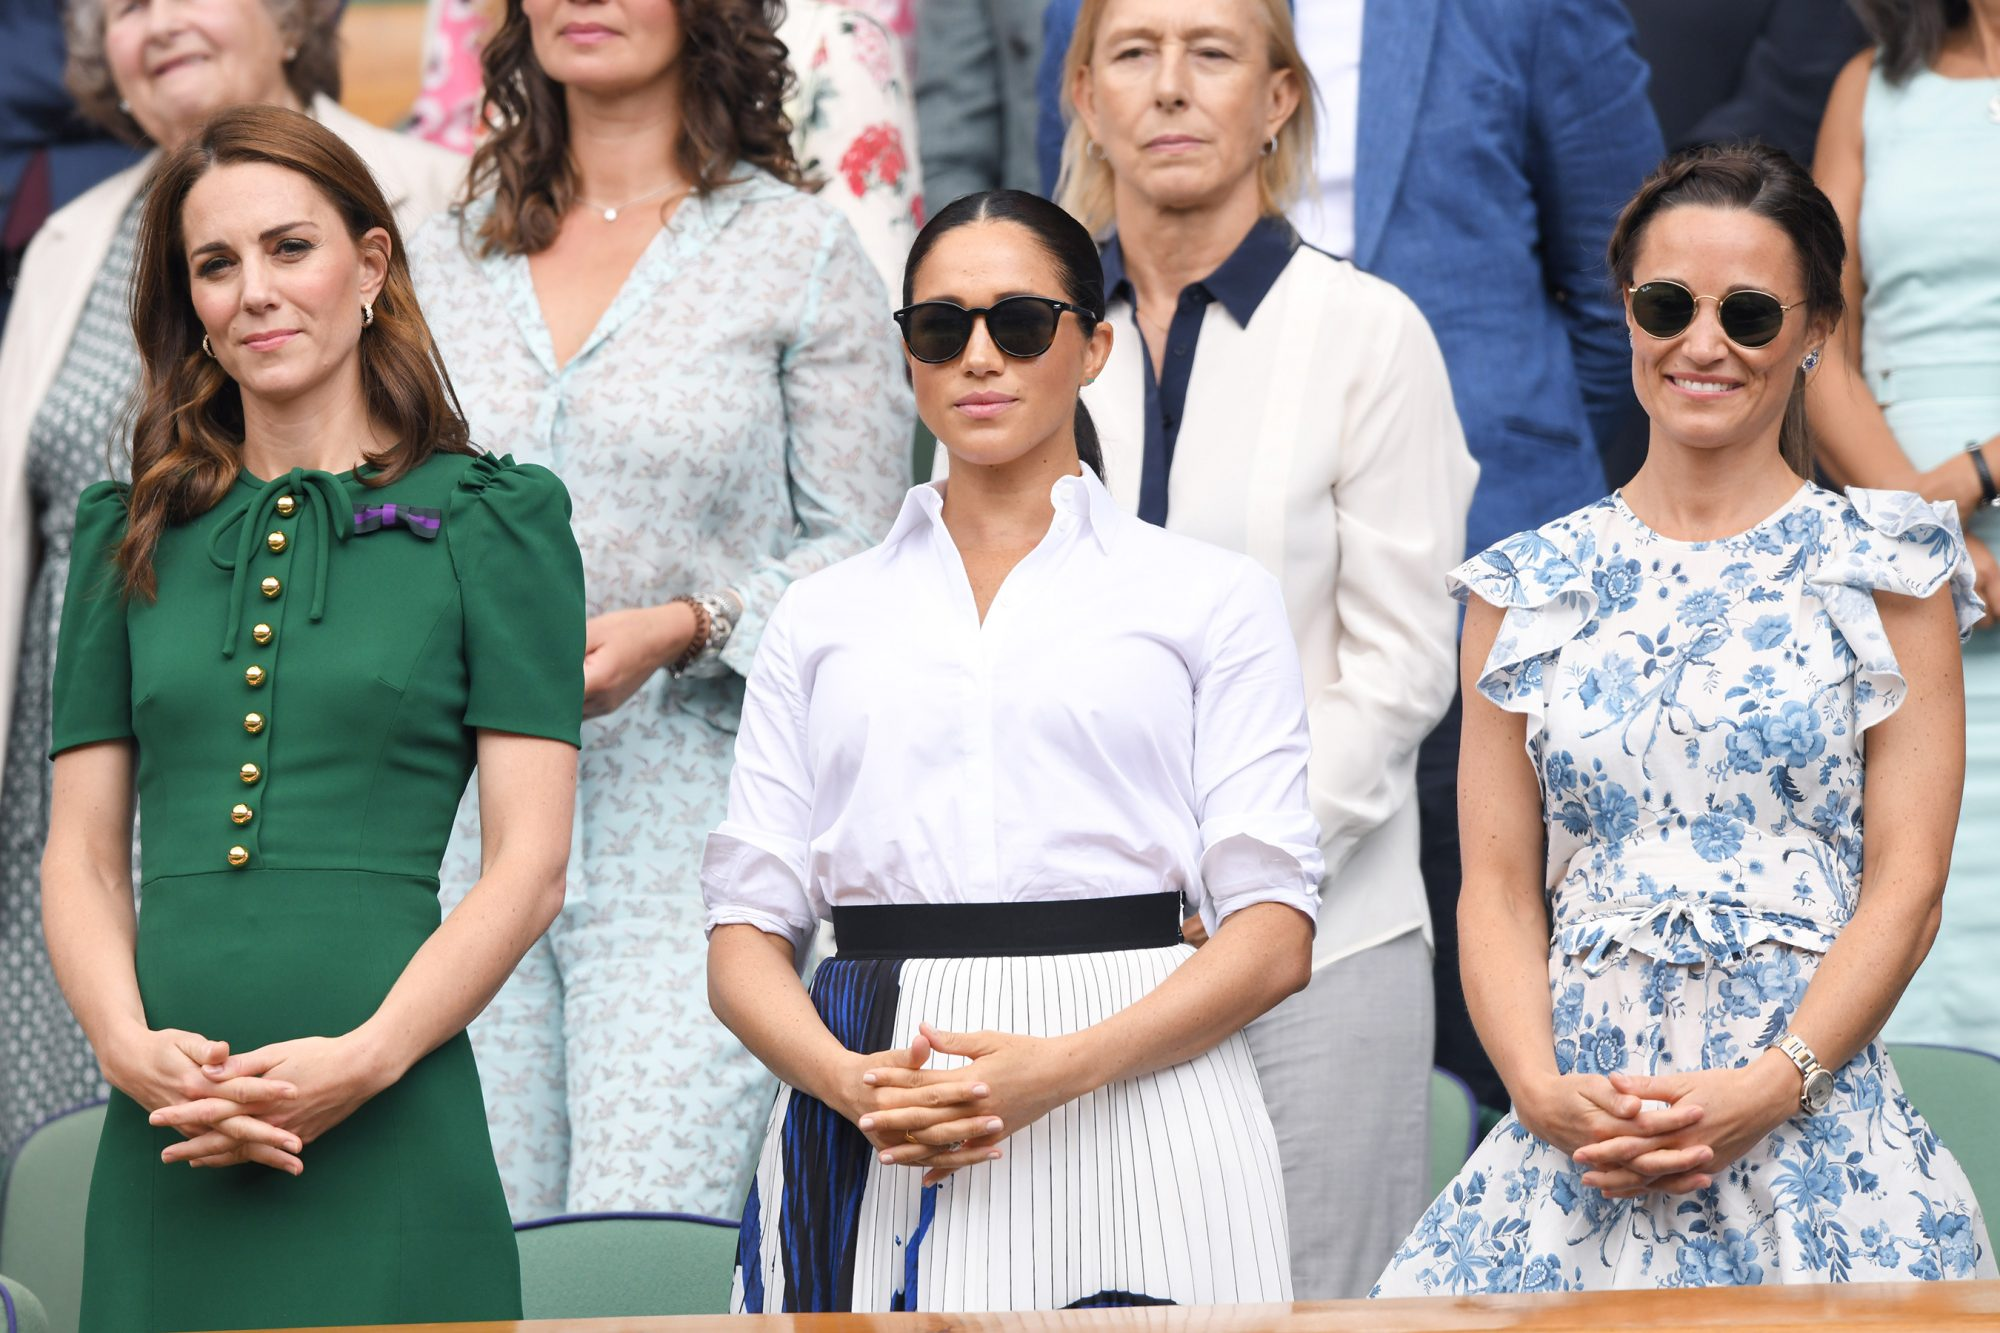 LONDON, ENGLAND - JULY 13: Catherine, Duchess of Cambridge, Meghan, Duchess of Sussex and Pippa Middleton in the Royal Box on Centre Court during day twelve of the Wimbledon Tennis Championships at All England Lawn Tennis and Croquet Club on July 13, 2019 in London, England. (Photo by Karwai Tang/Getty Images)